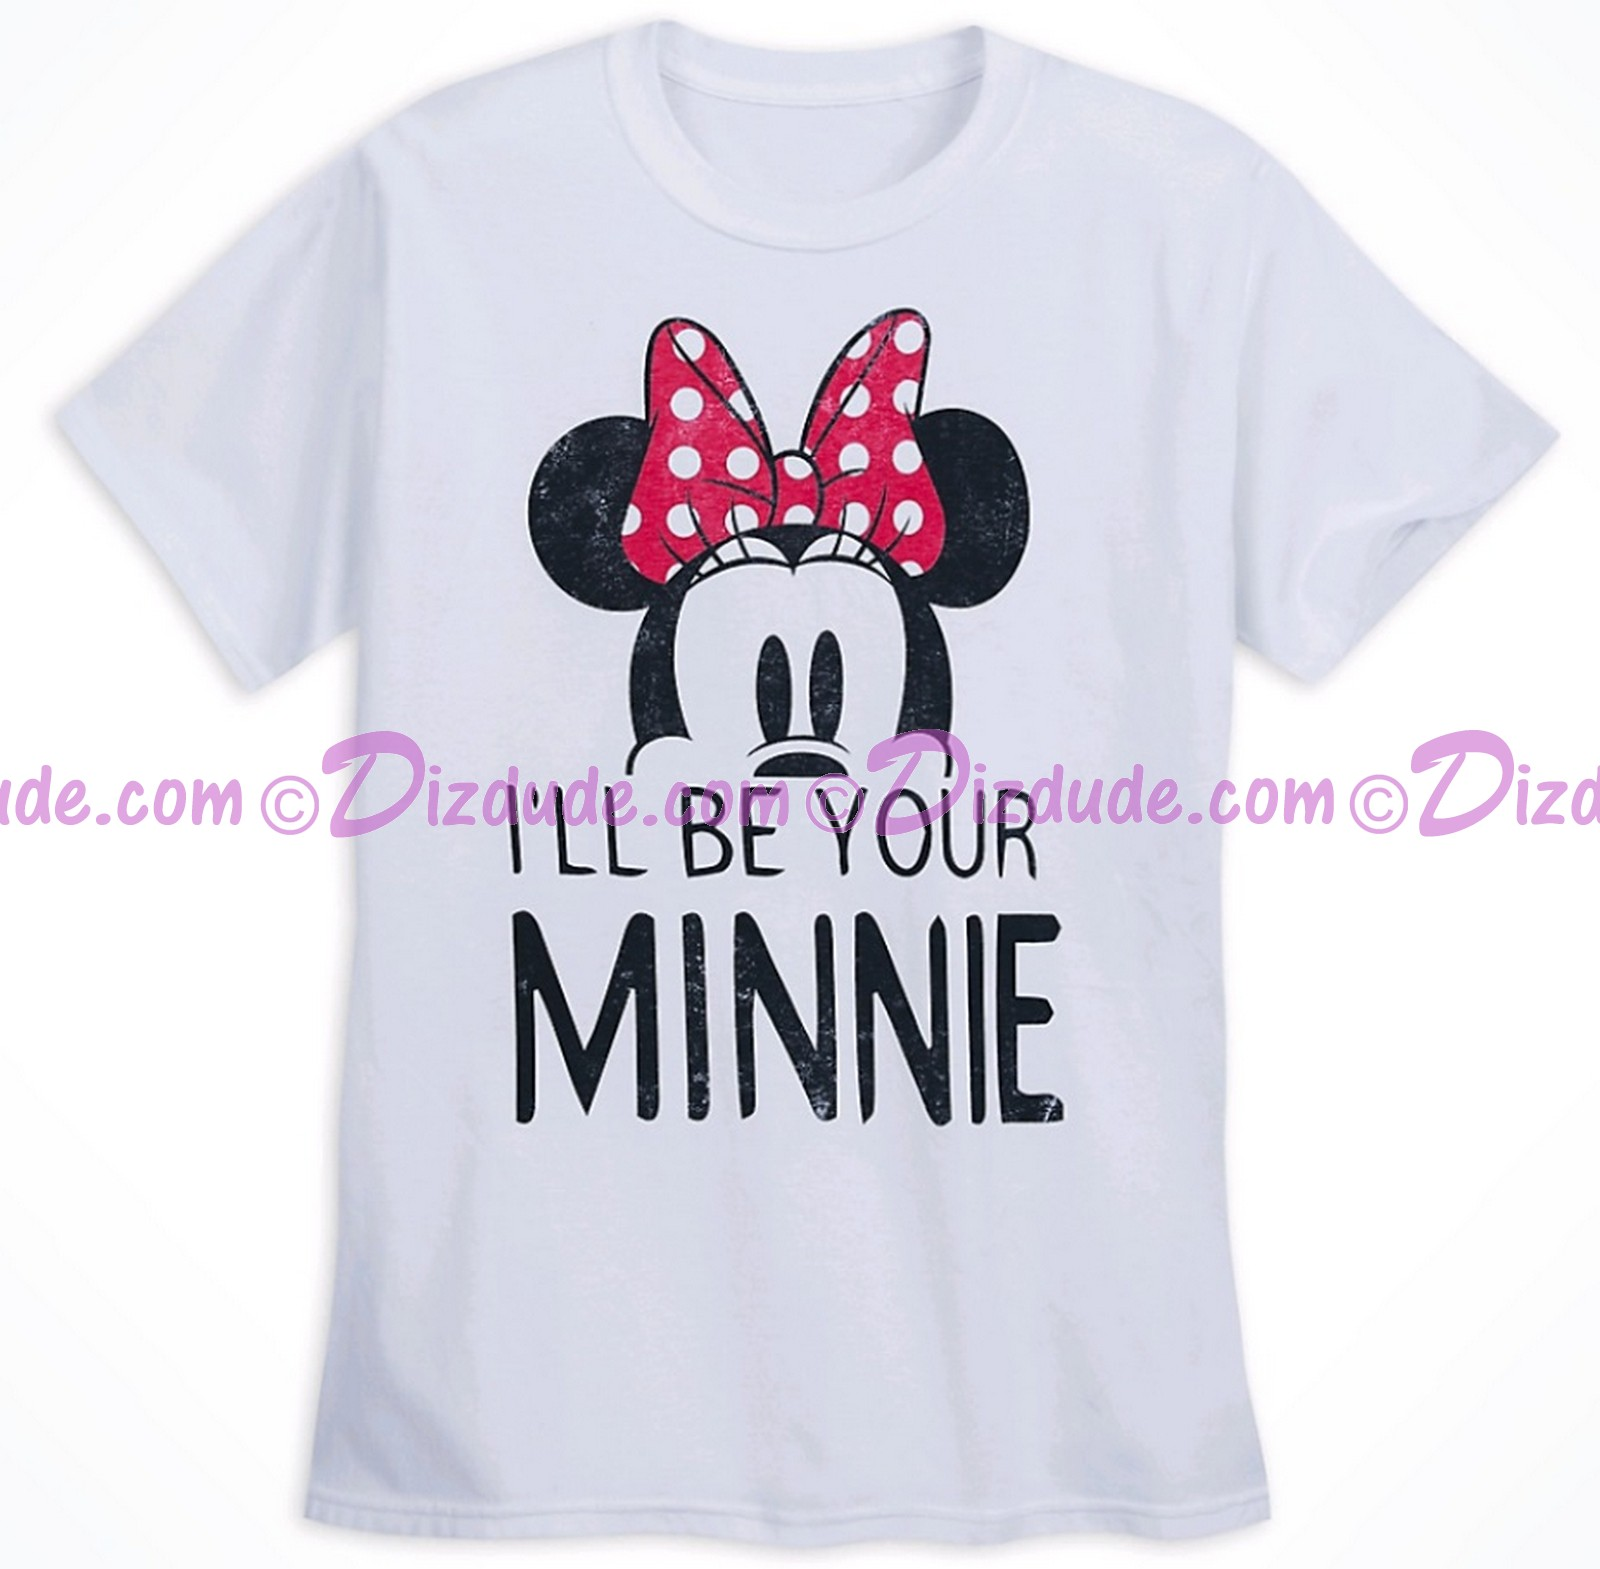 Disney Companion Shirt I'll Be Your Minnie Adult T-shirt (Tee, Tshirt or T shirt)